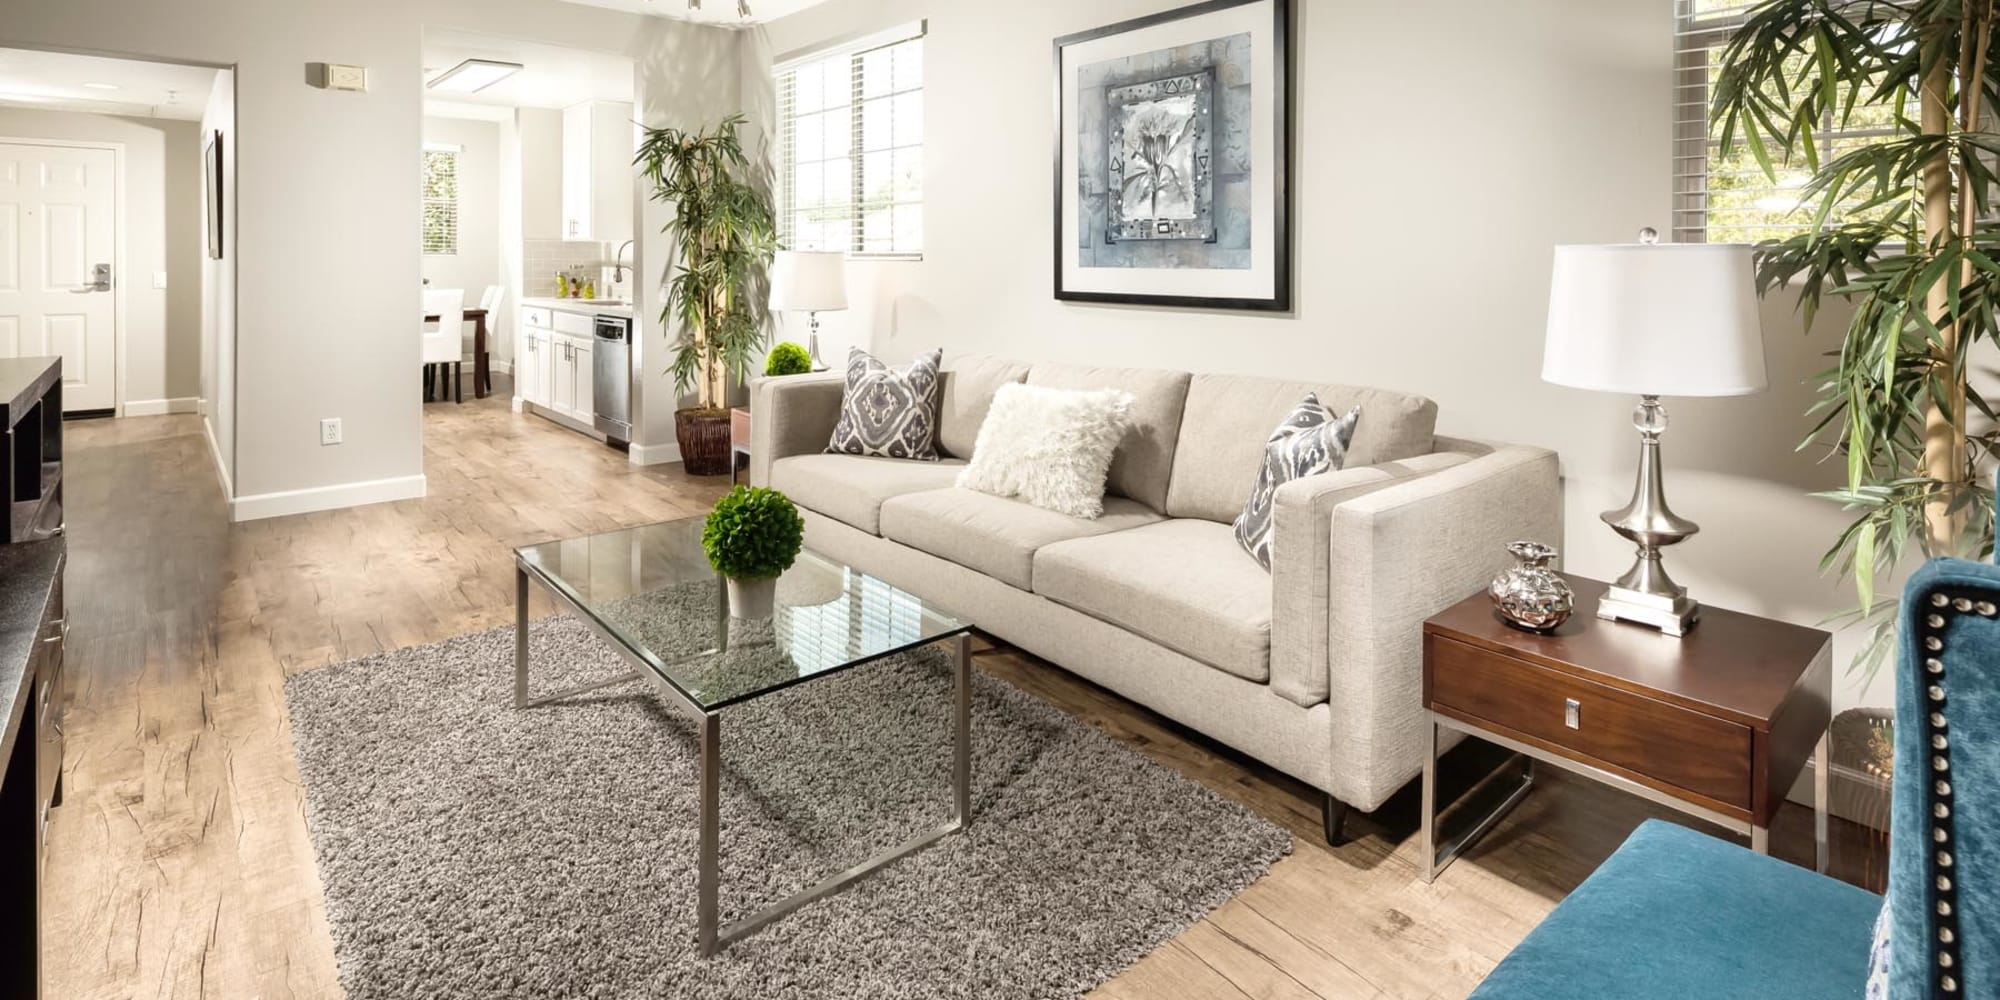 Hardwood flooring in the well-furnished living area of a model home at Mission Hills in Camarillo, California